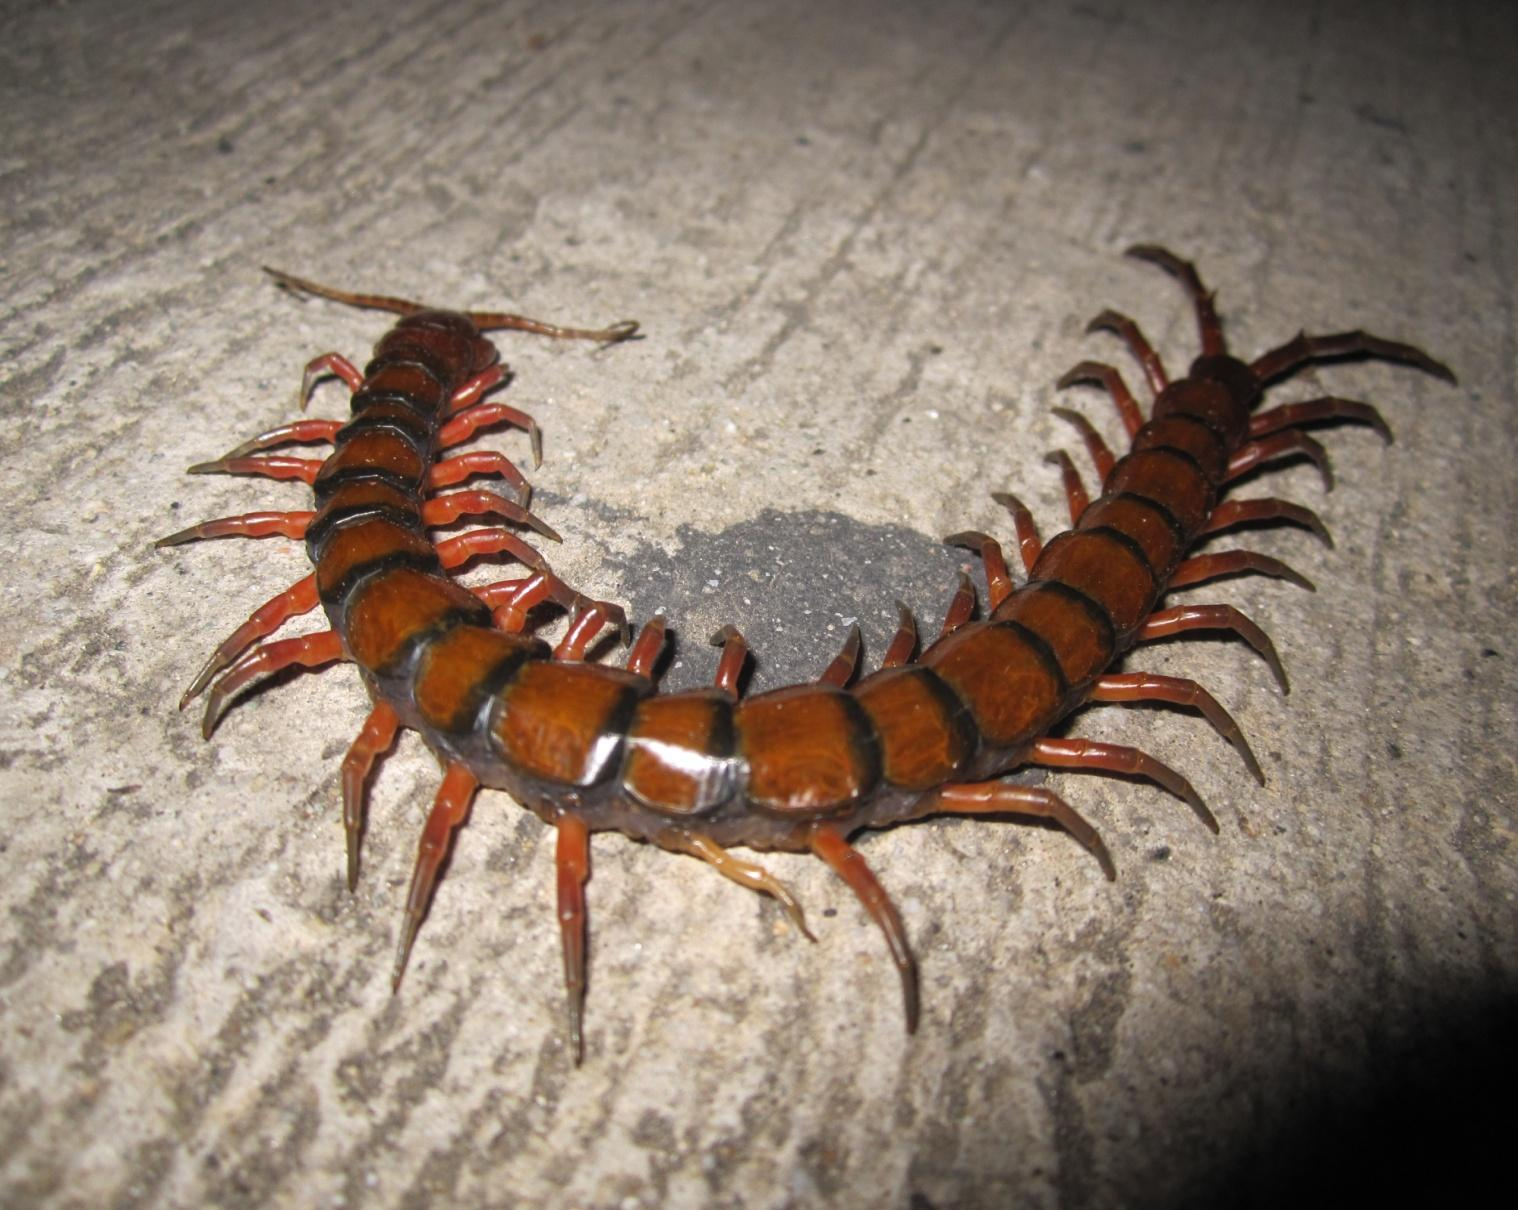 https://upload.wikimedia.org/wikipedia/commons/8/8b/Scolopendra_gigantea.jpg